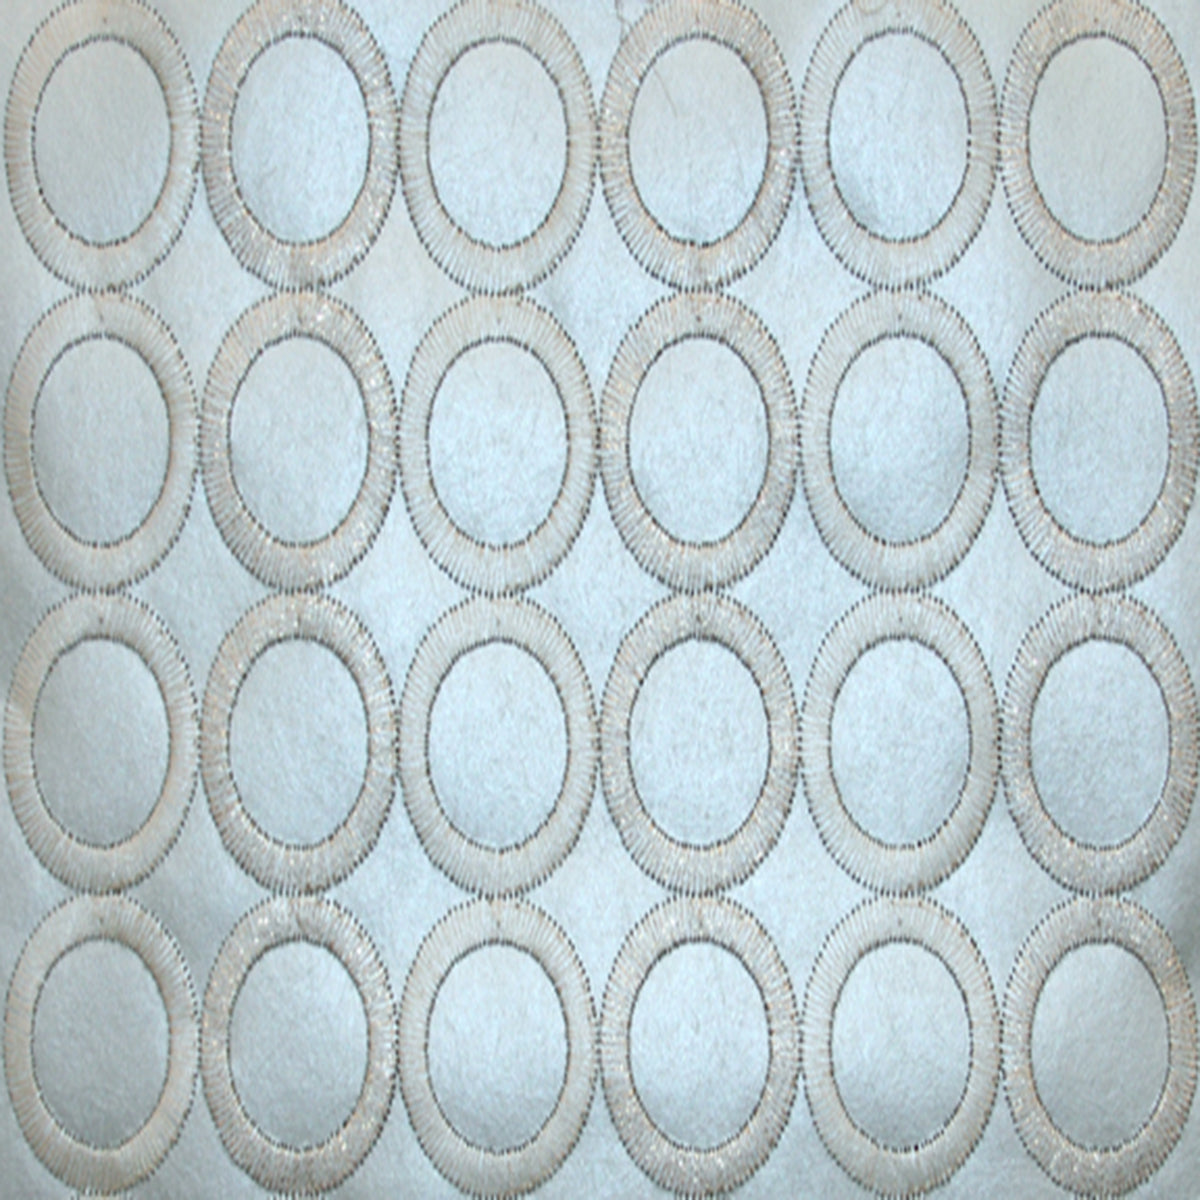 Dream On Embroidered Circles Wallpaper in Green